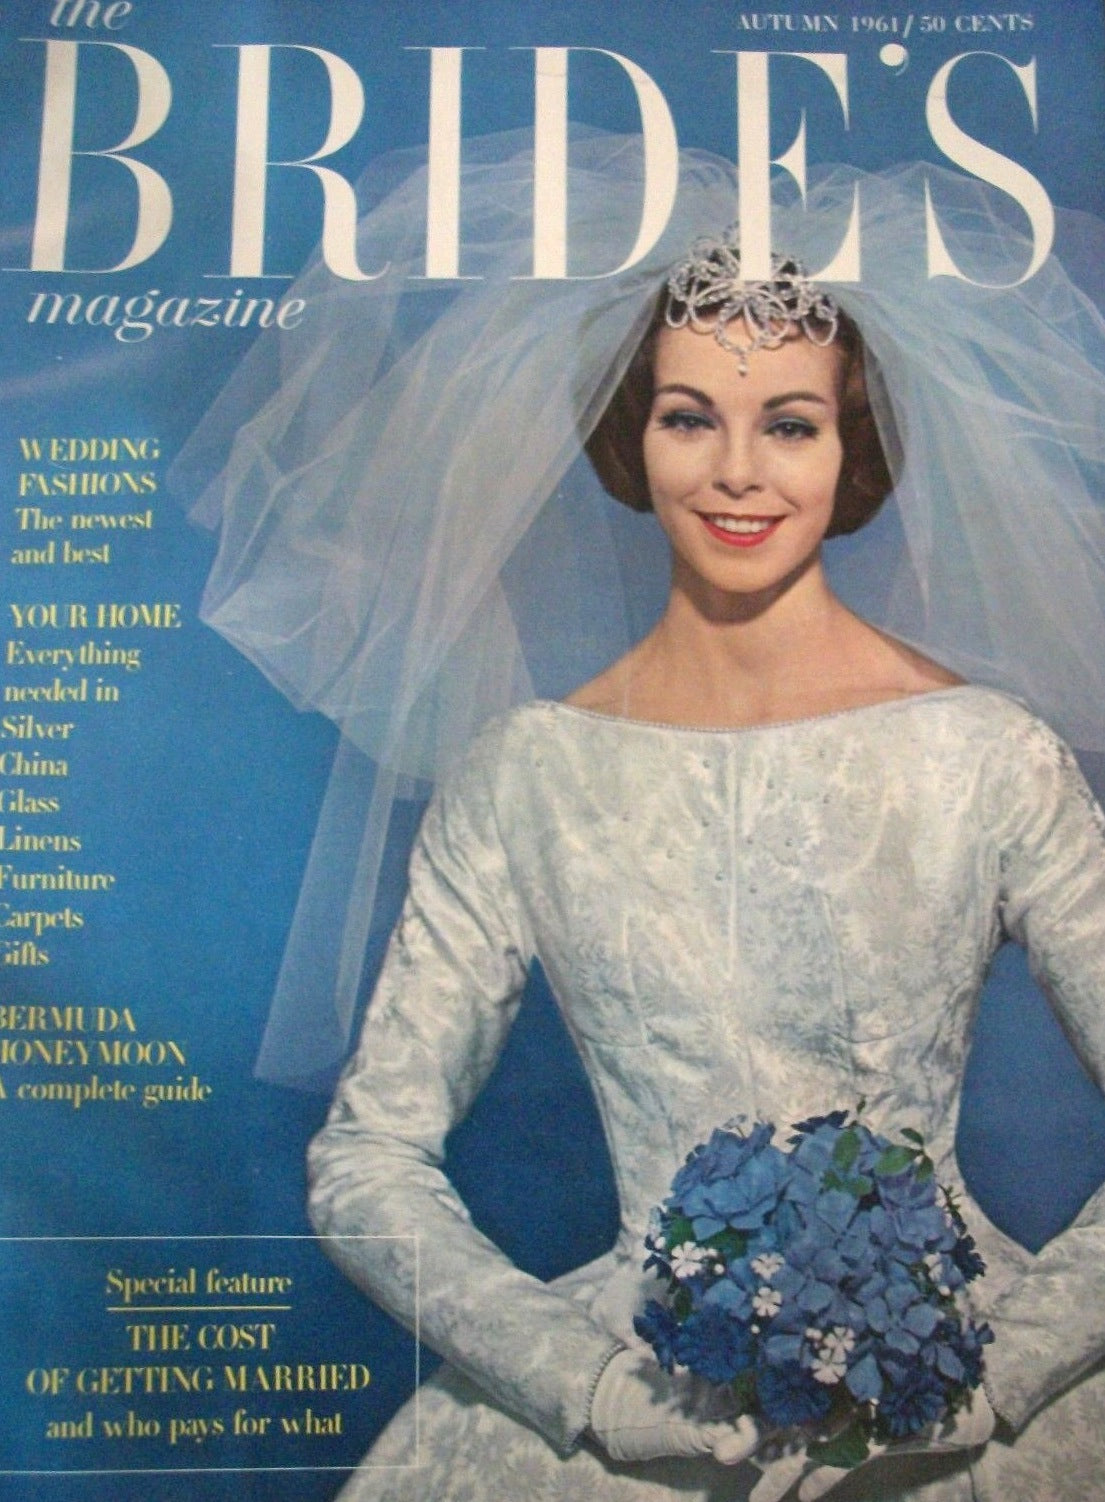 Vintage Wedding Dresses: Inspiration Throughout the Decades – ieie